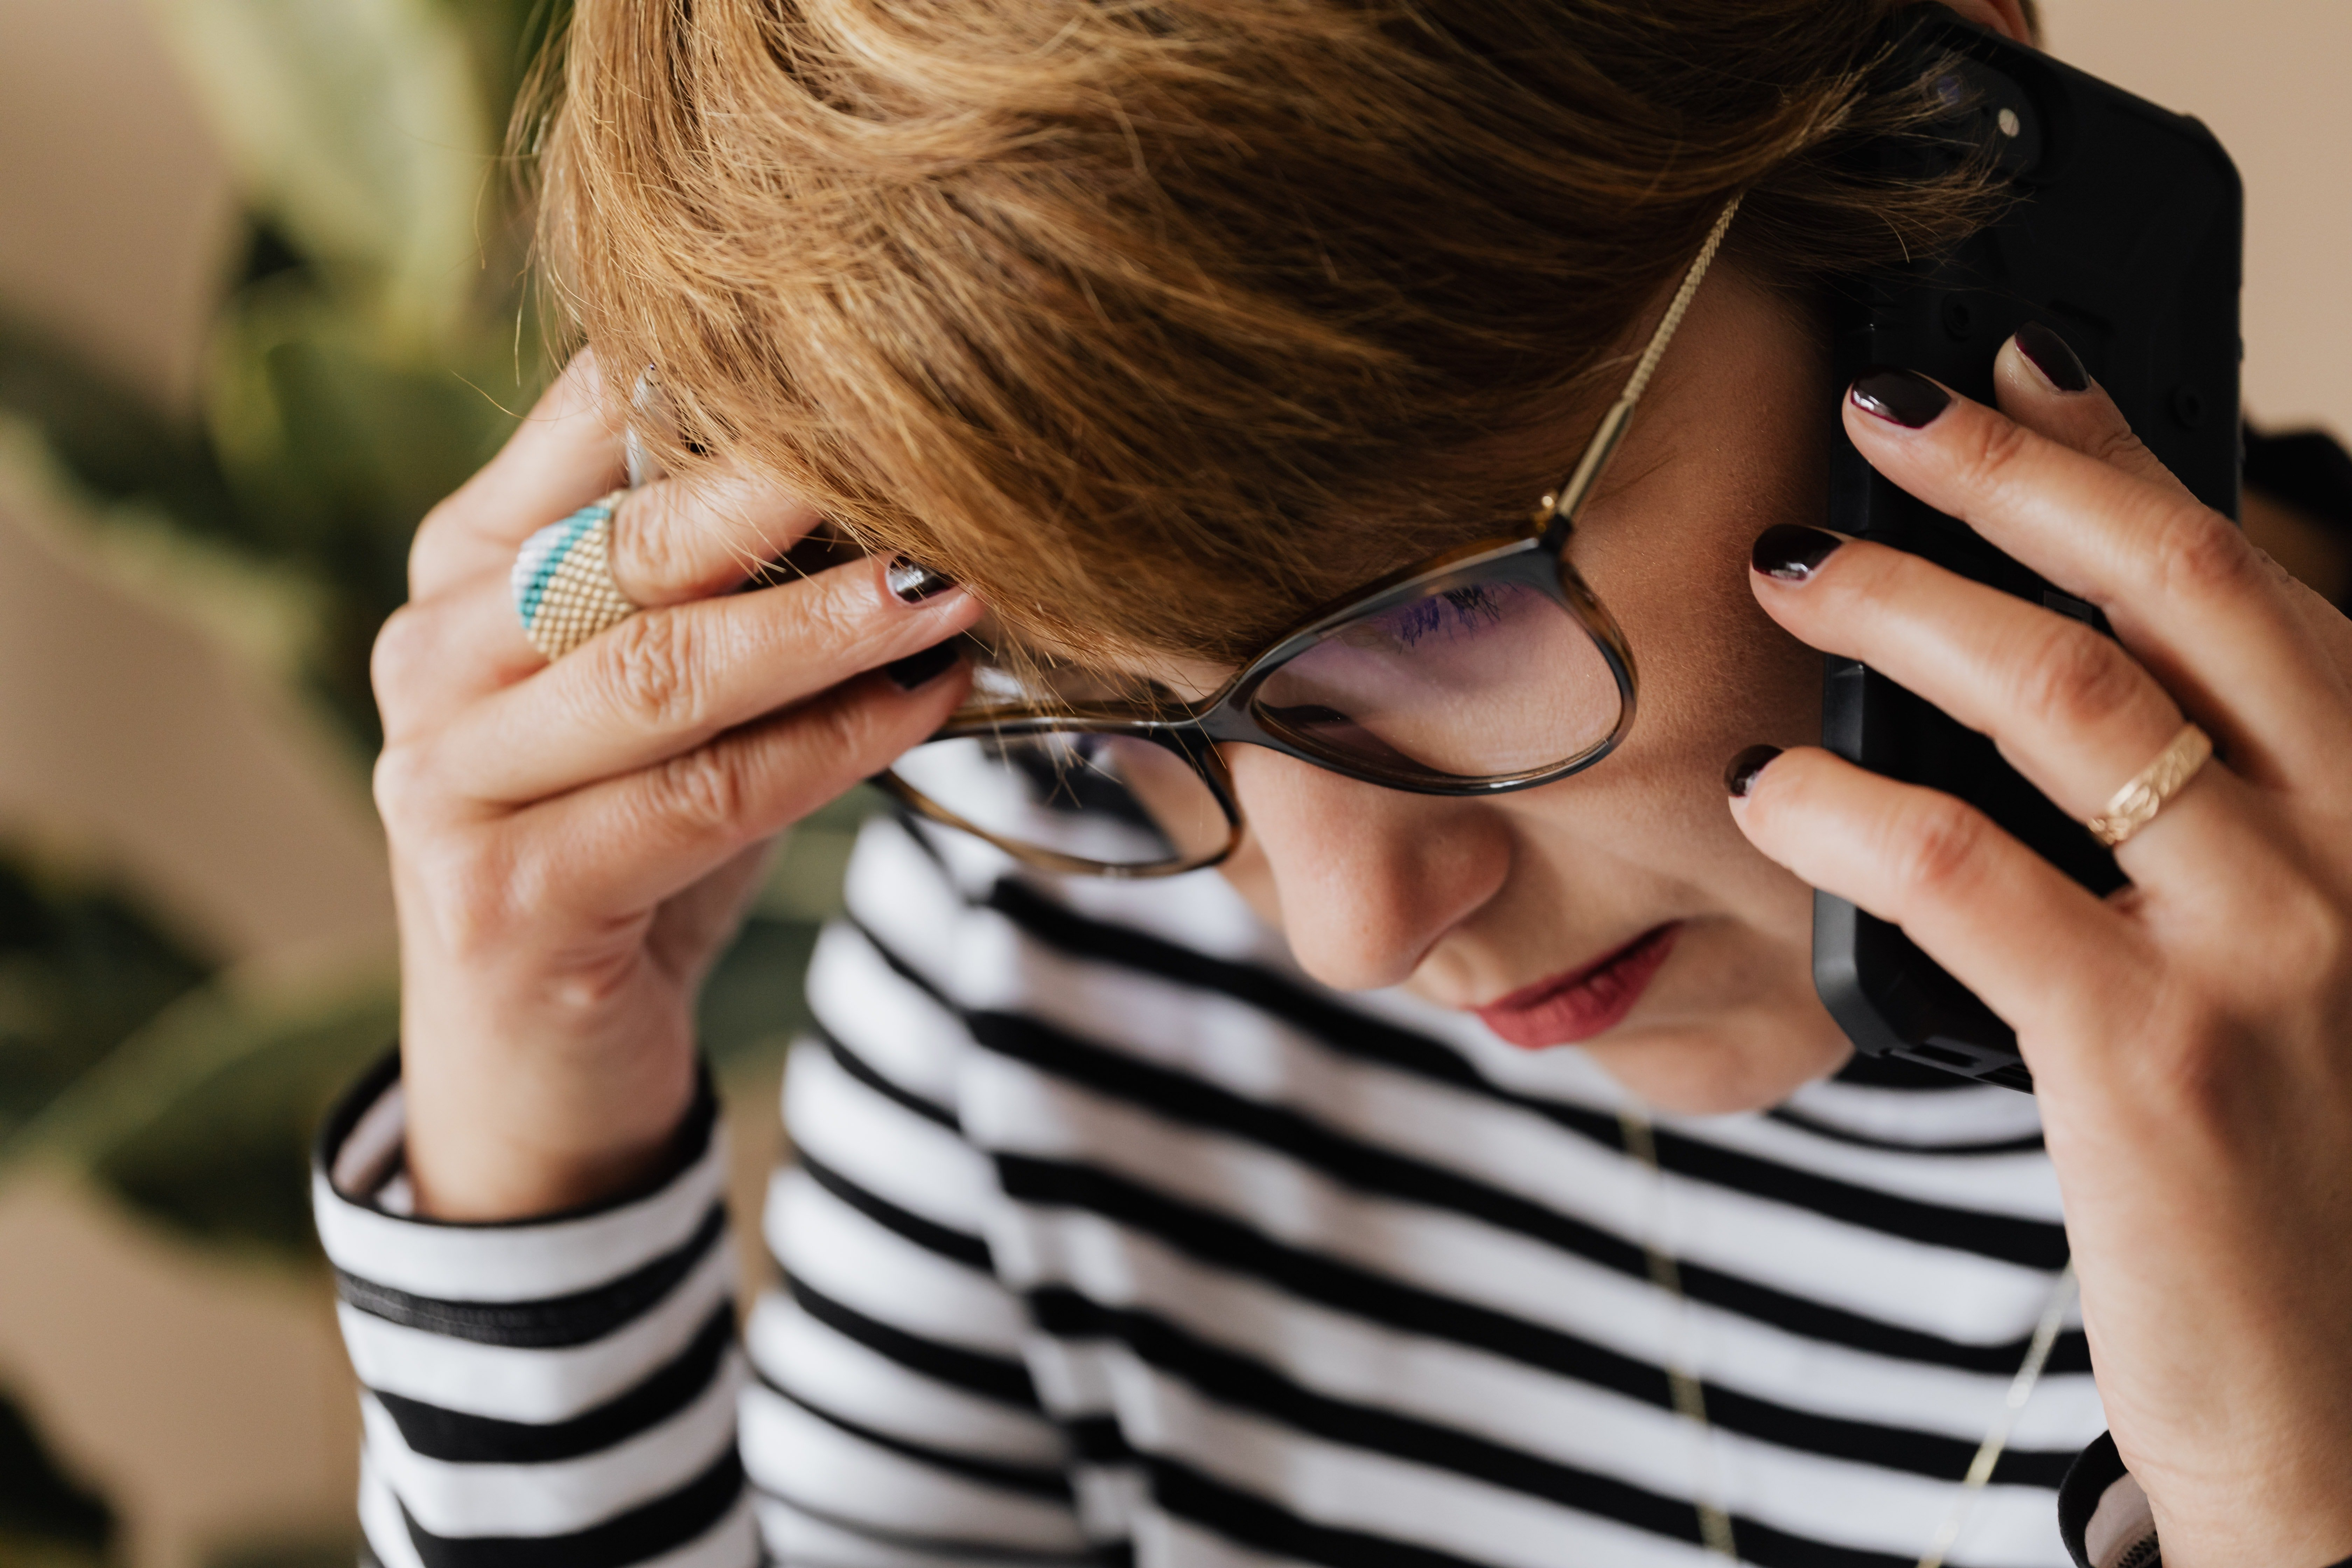 Linda sounded very worried on call | Photo: Pexels